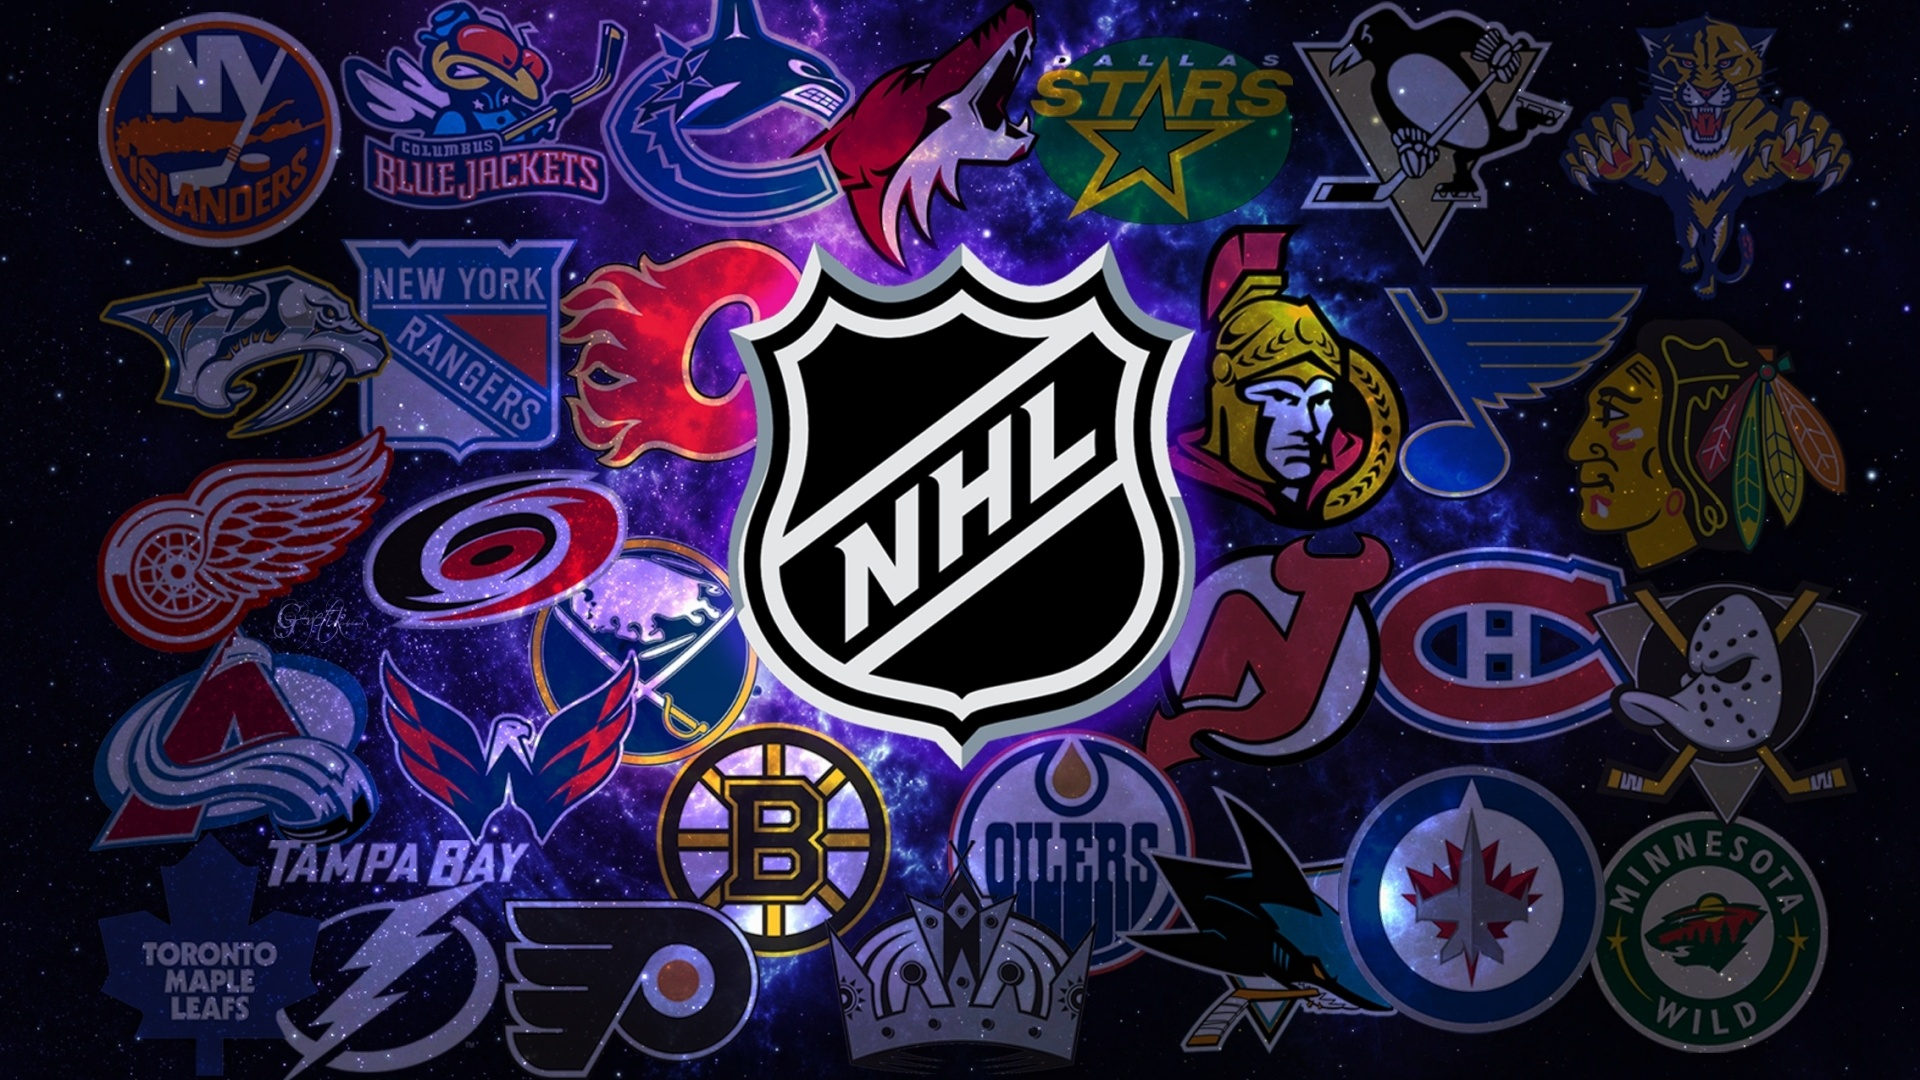 1920x1080 HD NHL TEAMS Wallpaper 2013 desktop PC and Mac wallpaper 1920x1080